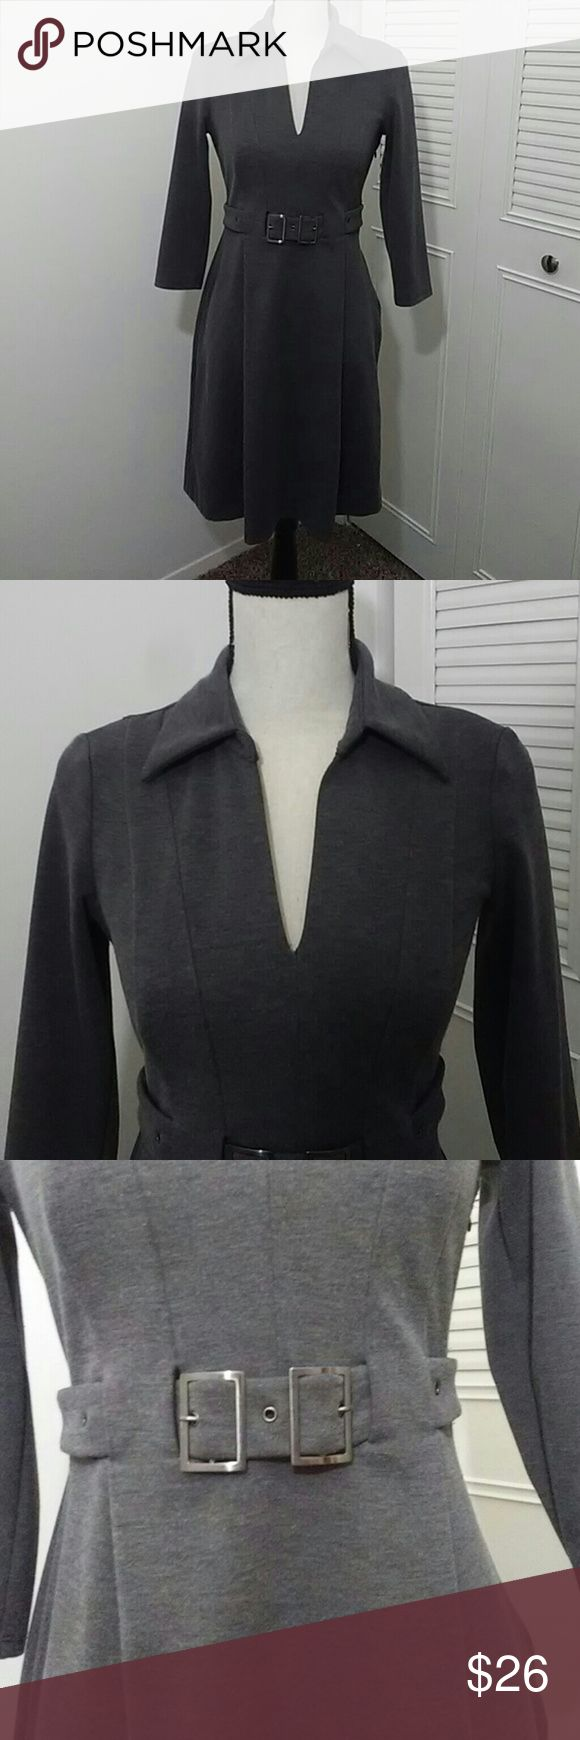 The Perfect Work Dress This grey dress by Nine West is the perfect blend of sultriness and sophistication. The thick fabric is warm and comfortable, and the cut of the dress hugs every curve. Features include a v neckline, built-in belt (nonadjustible) that is double belted, side zipper, 3/4 sleeves, and two large pleats in the front to allow for some skirt flair. Measurement (lying flat): bust 16.5, waist 14, hips 20, sleeves 17, length (from back) 36. Make me an offer! Nine West Dresses…